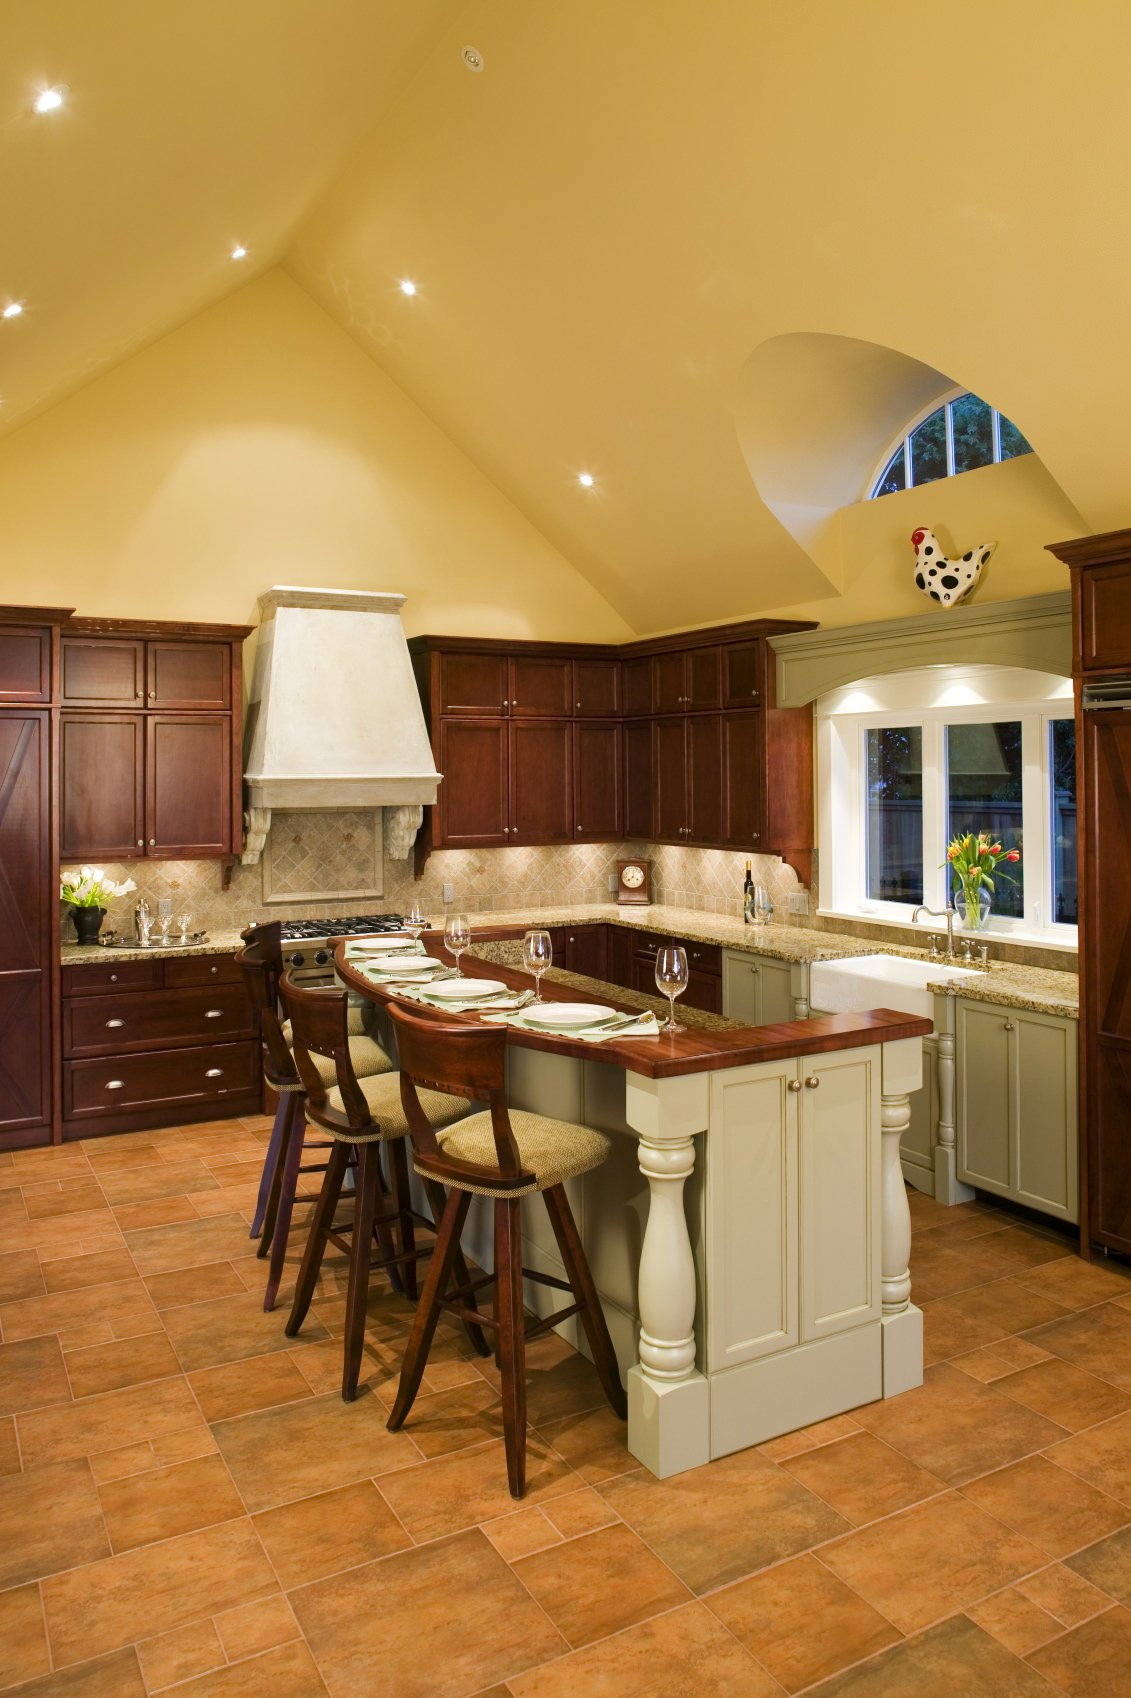 This kitchen boasts beige walls and tiles flooring, along with a stylish center island that provides space for a breakfast bar.